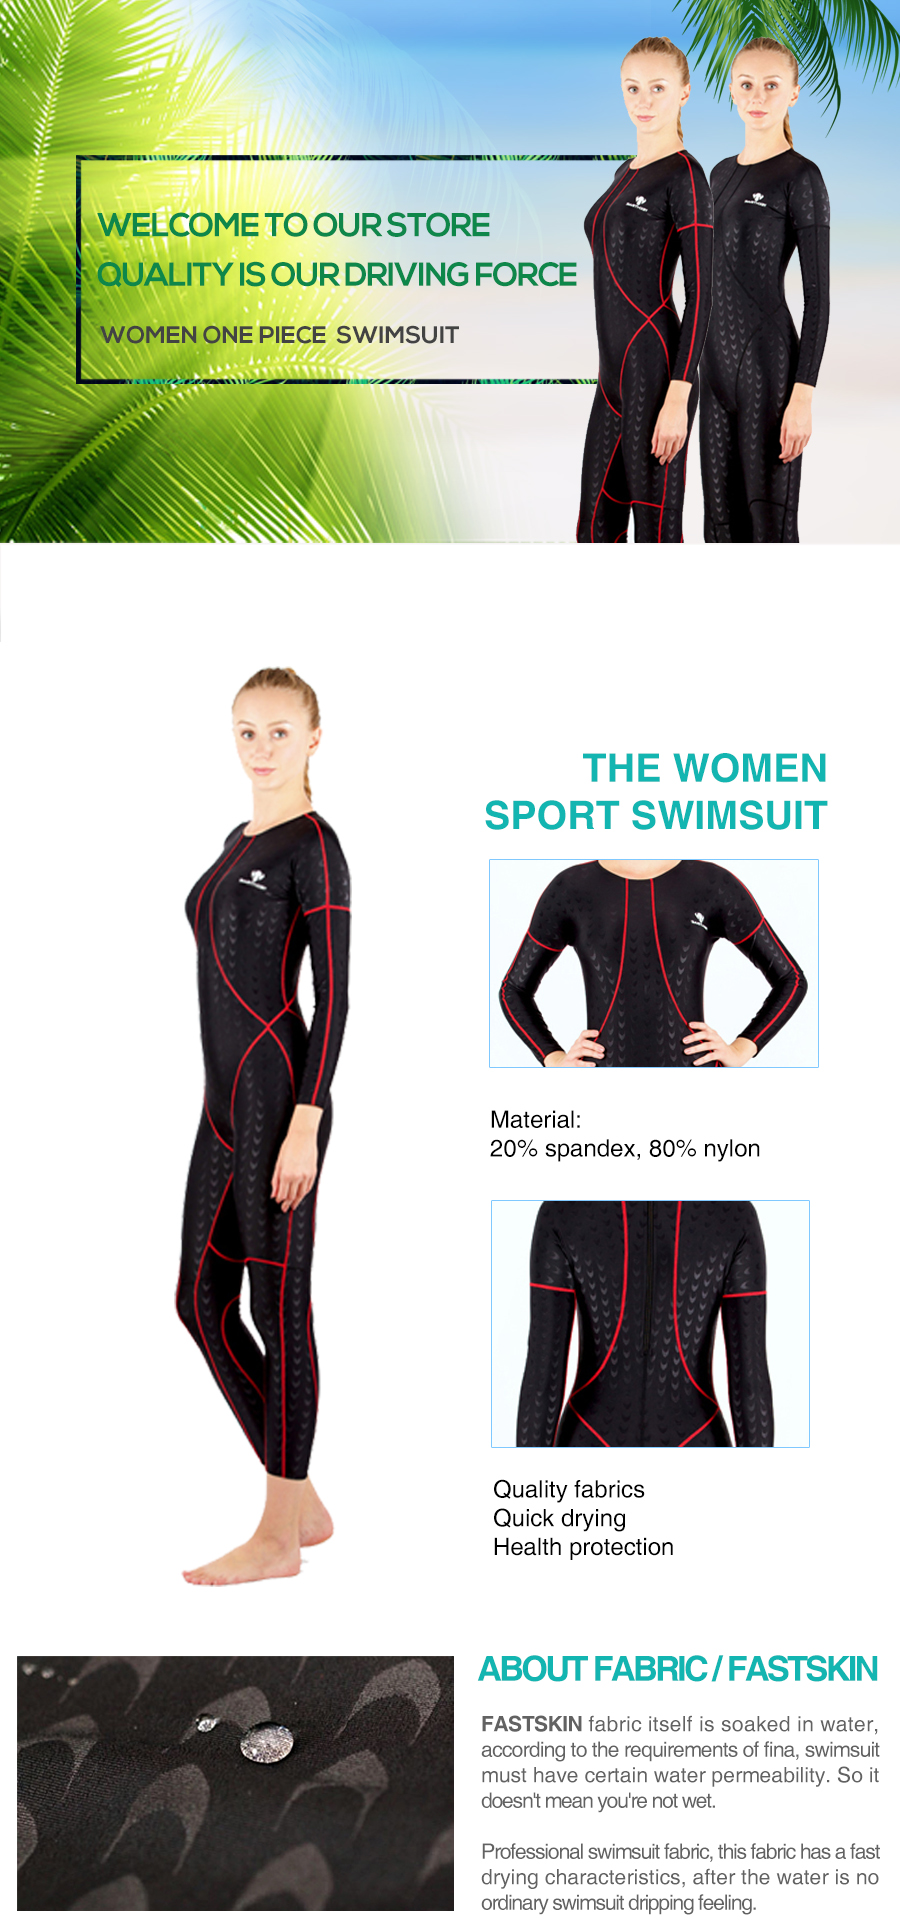 42c8cd4503 HXBYswimwear women swimsuit female arena swimming plus size racing suit  full body competition swimsuits competitive shark skin swim